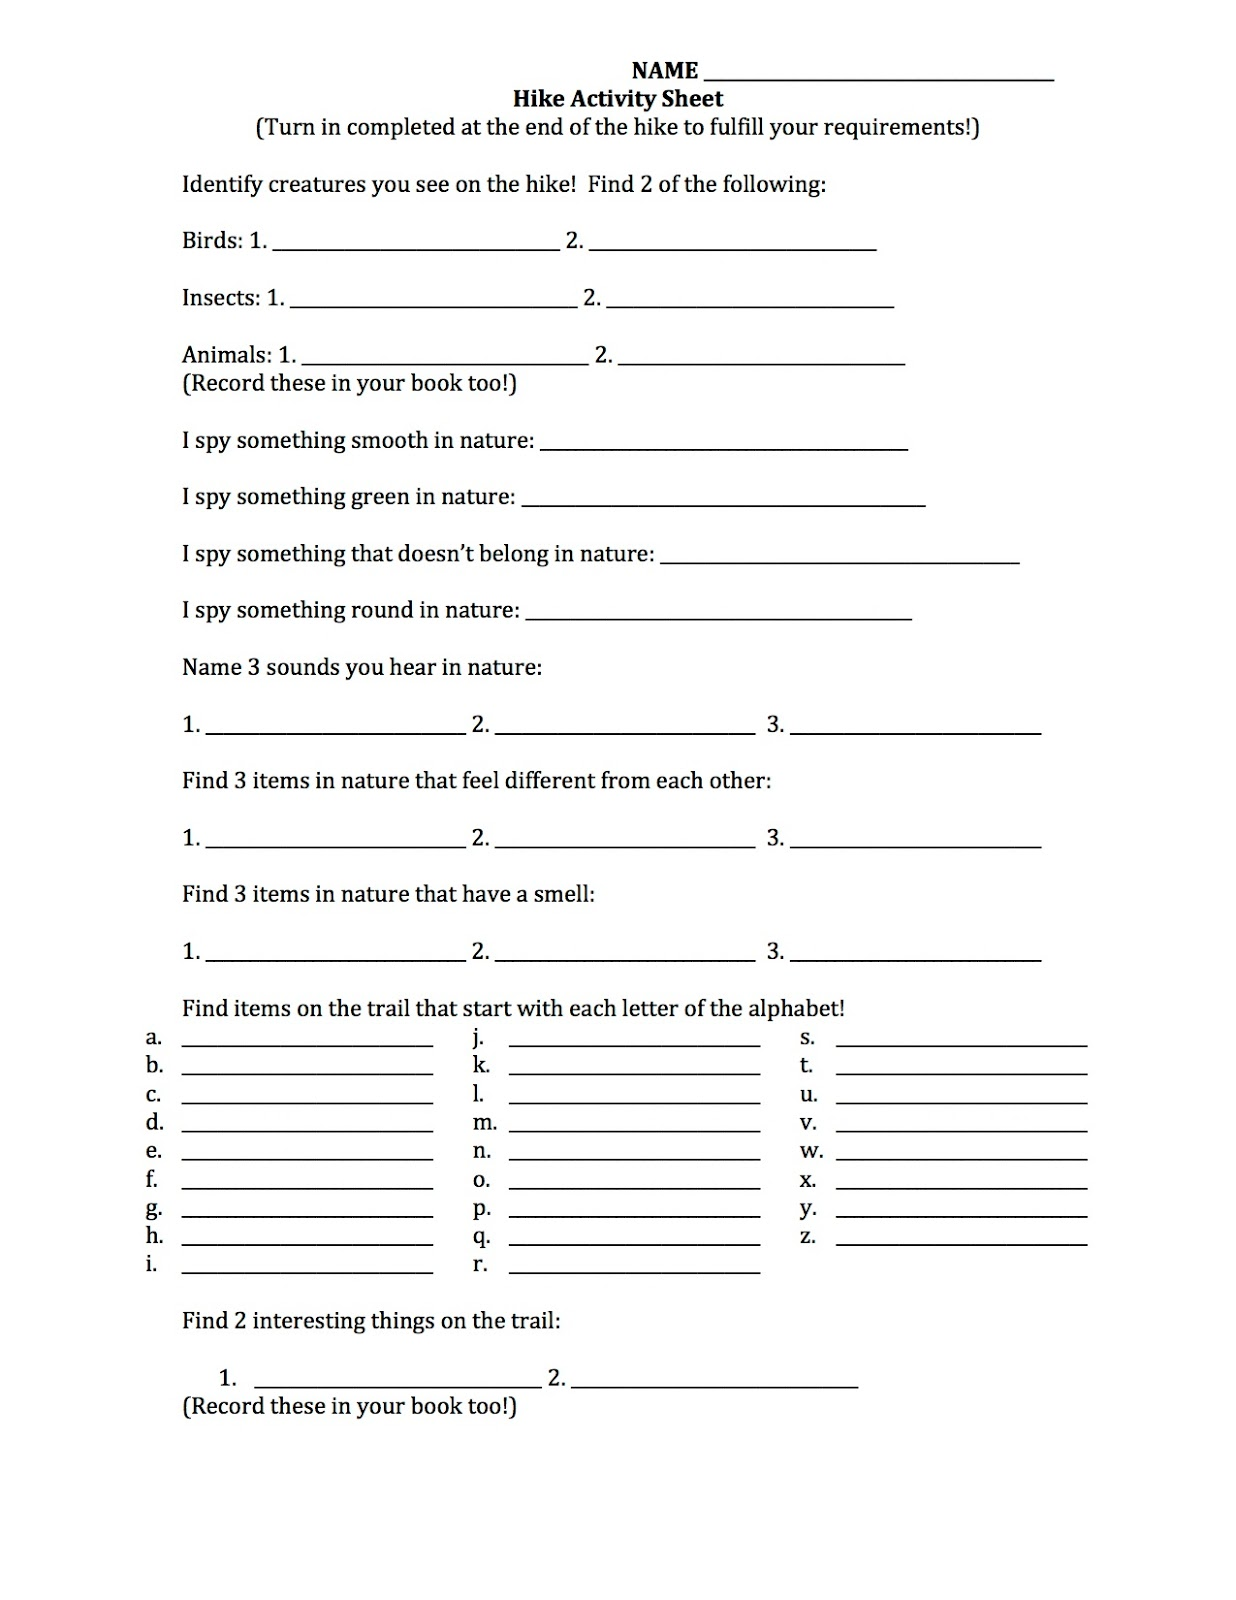 Printables Cub Scout Worksheets what 5 teach me cub scout hike activity worksheet its a 2 page document that you can download here pictured above is only the first i printed these back to so each will get 1 pag